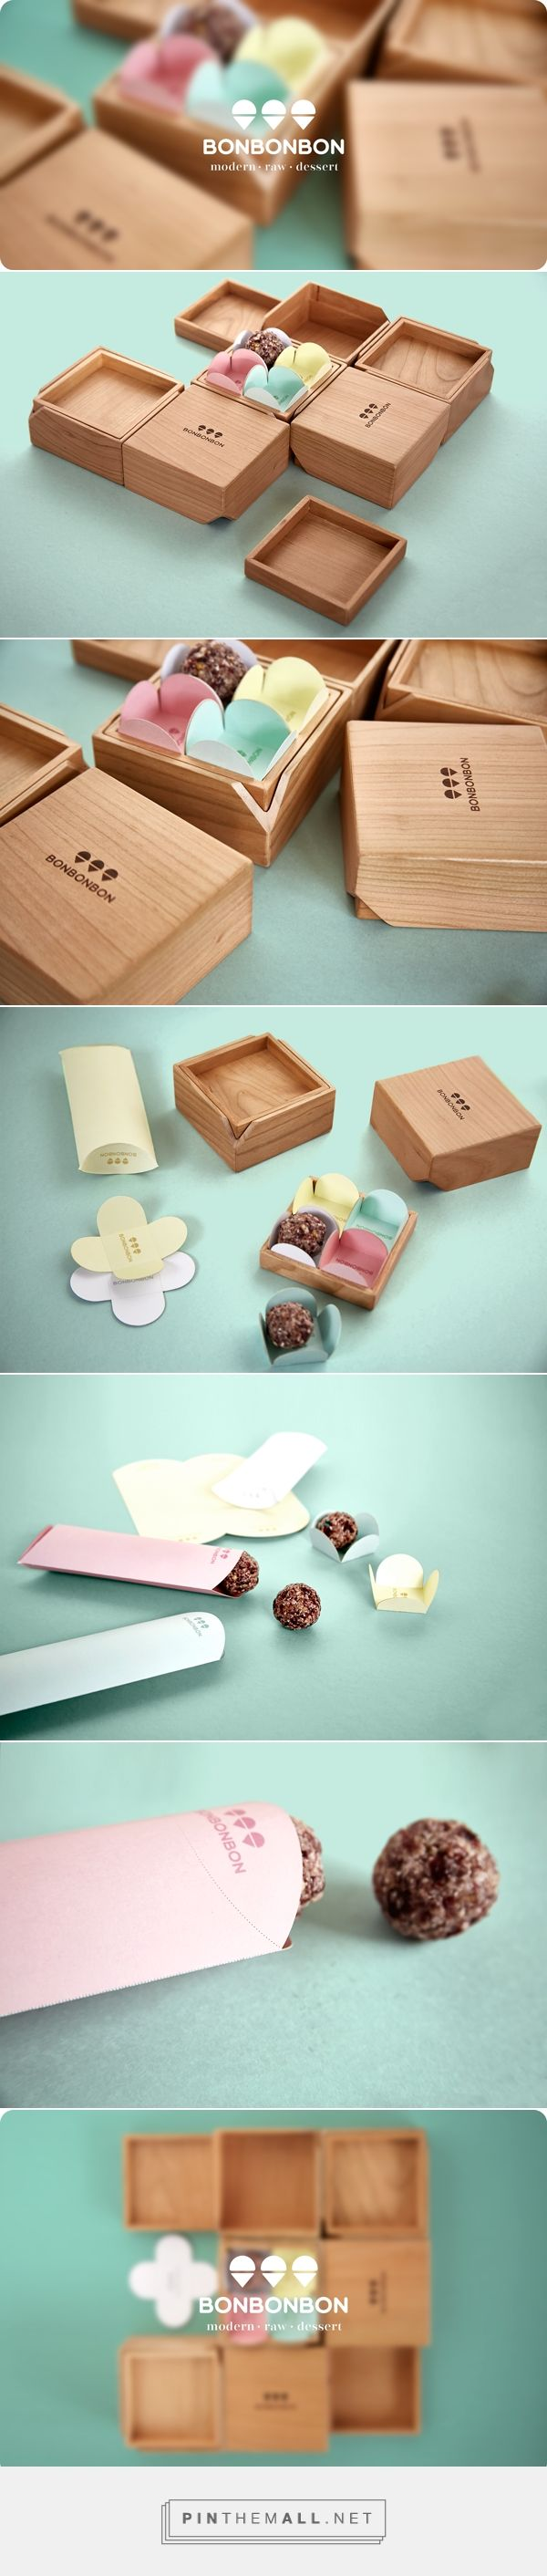 Removable stacking shelves. Bonbonbon wooden box packaging